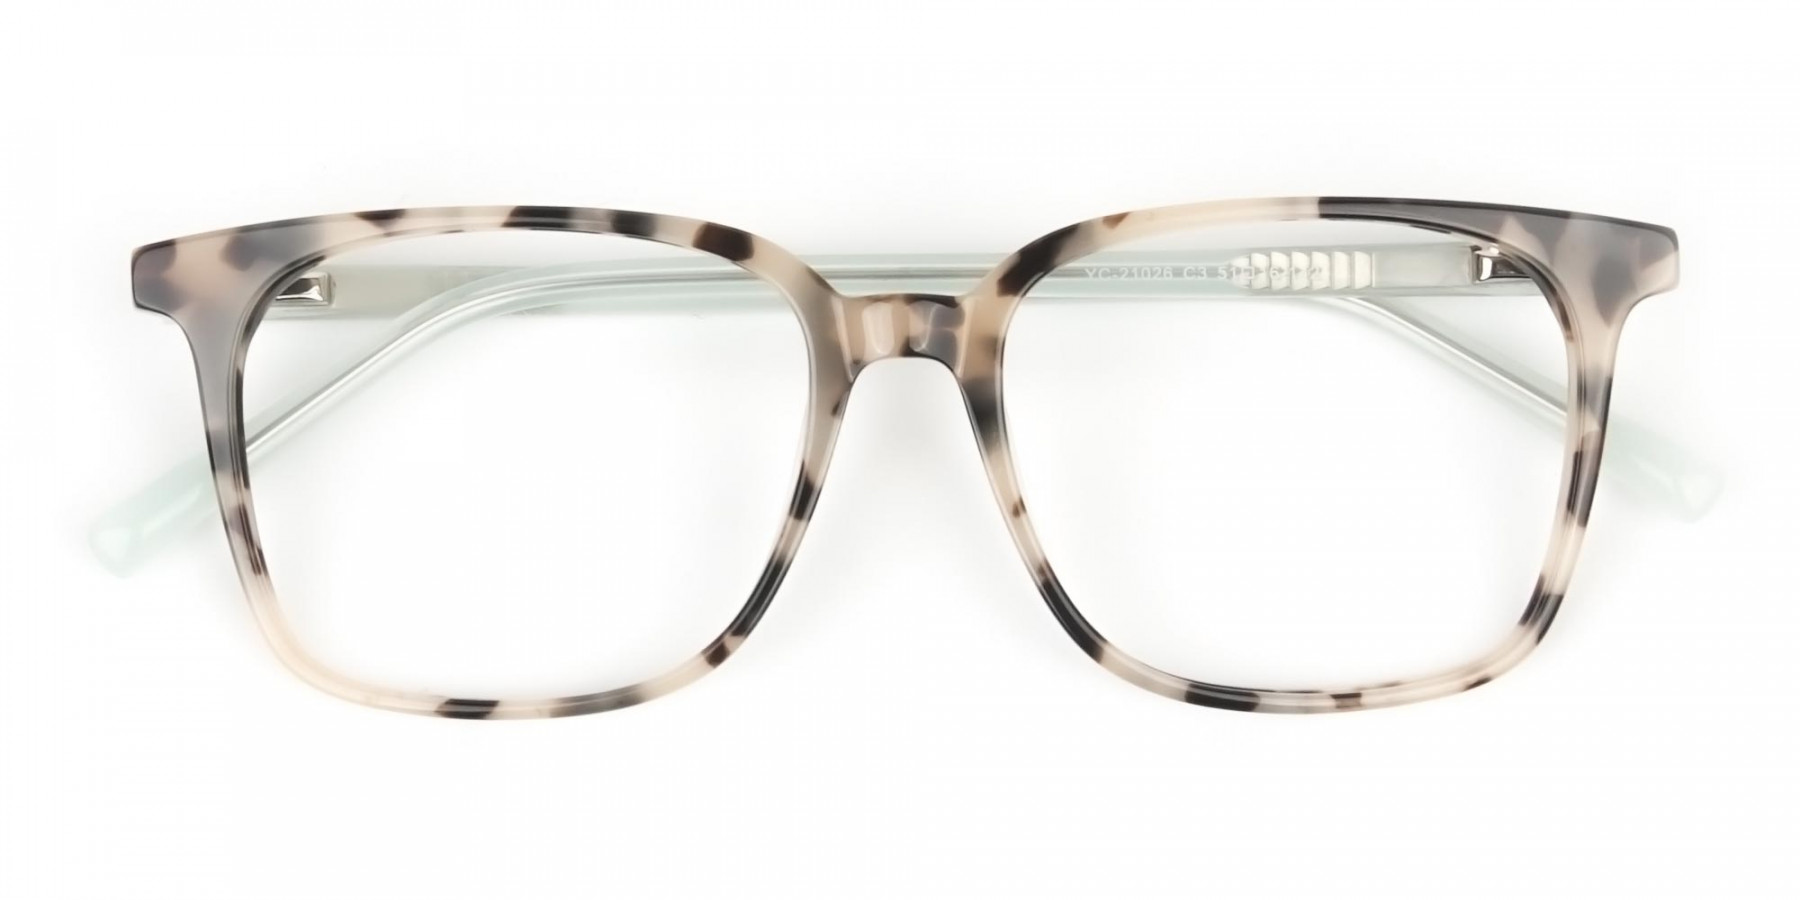 Crystal Teal Green Creamy Tortoise Glasses - 1